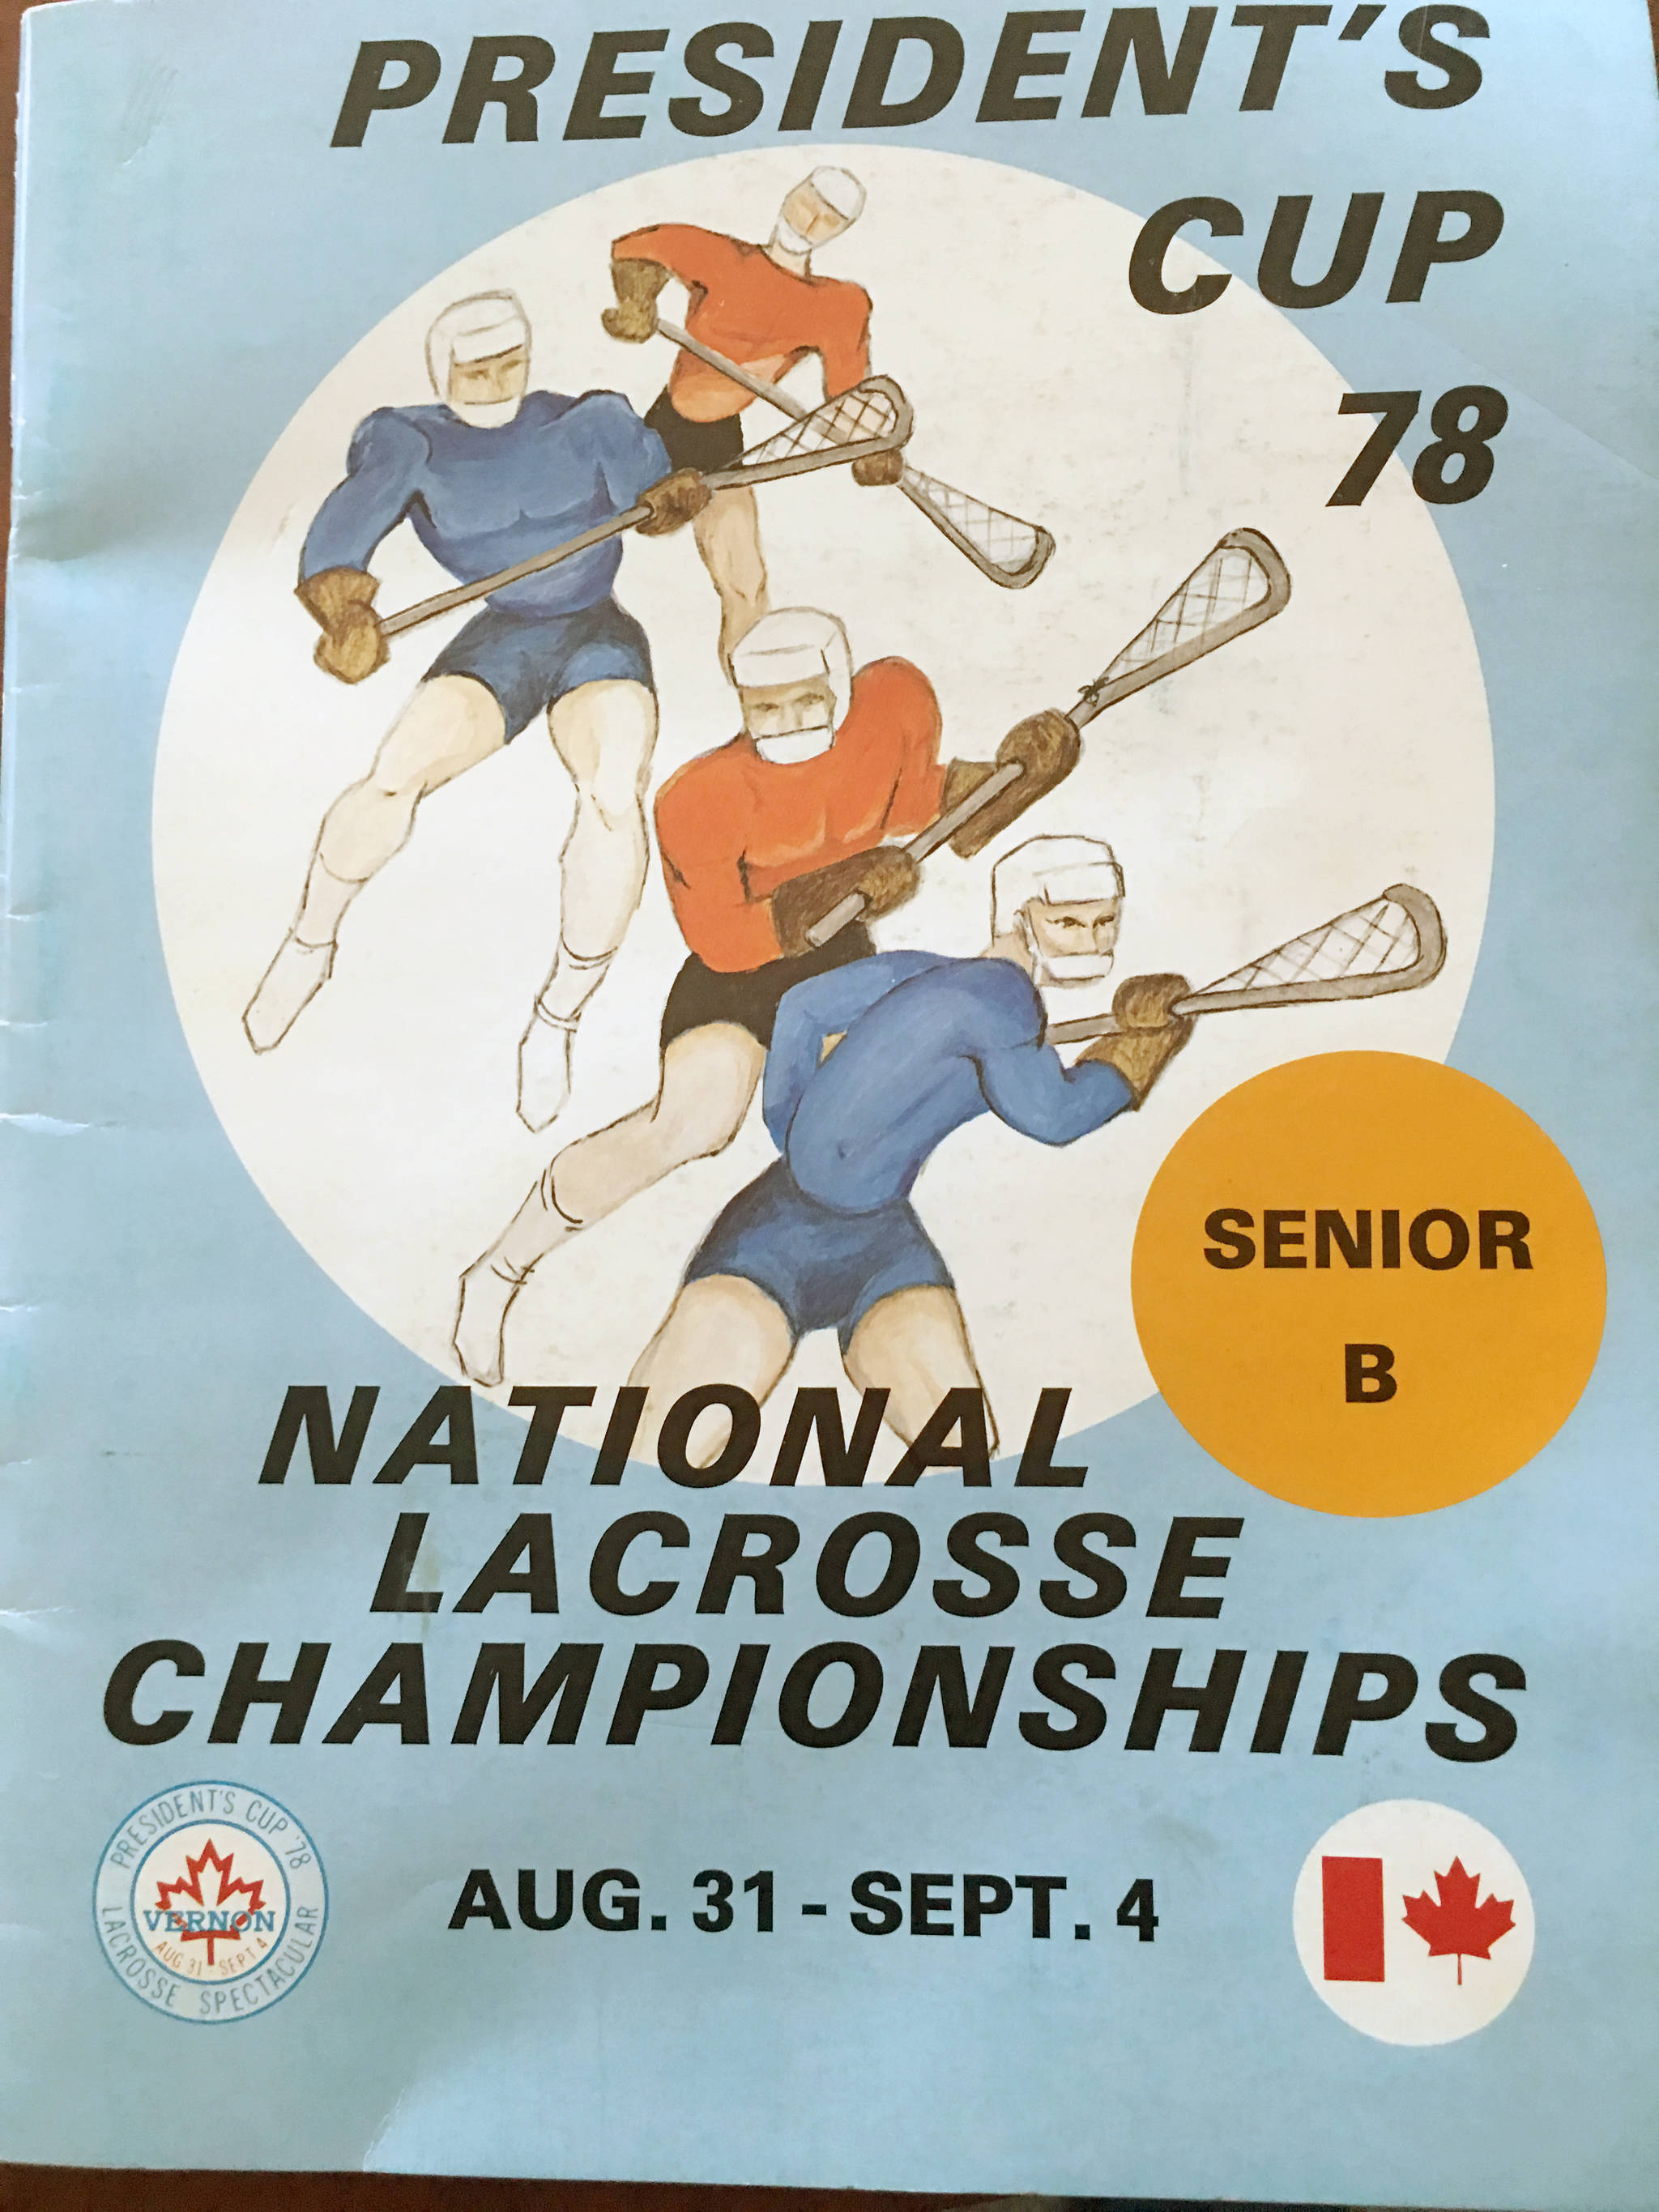 The program for the 1978 President's Cup tournament which was won by the Tigers at a jam-packed Civic Arena.